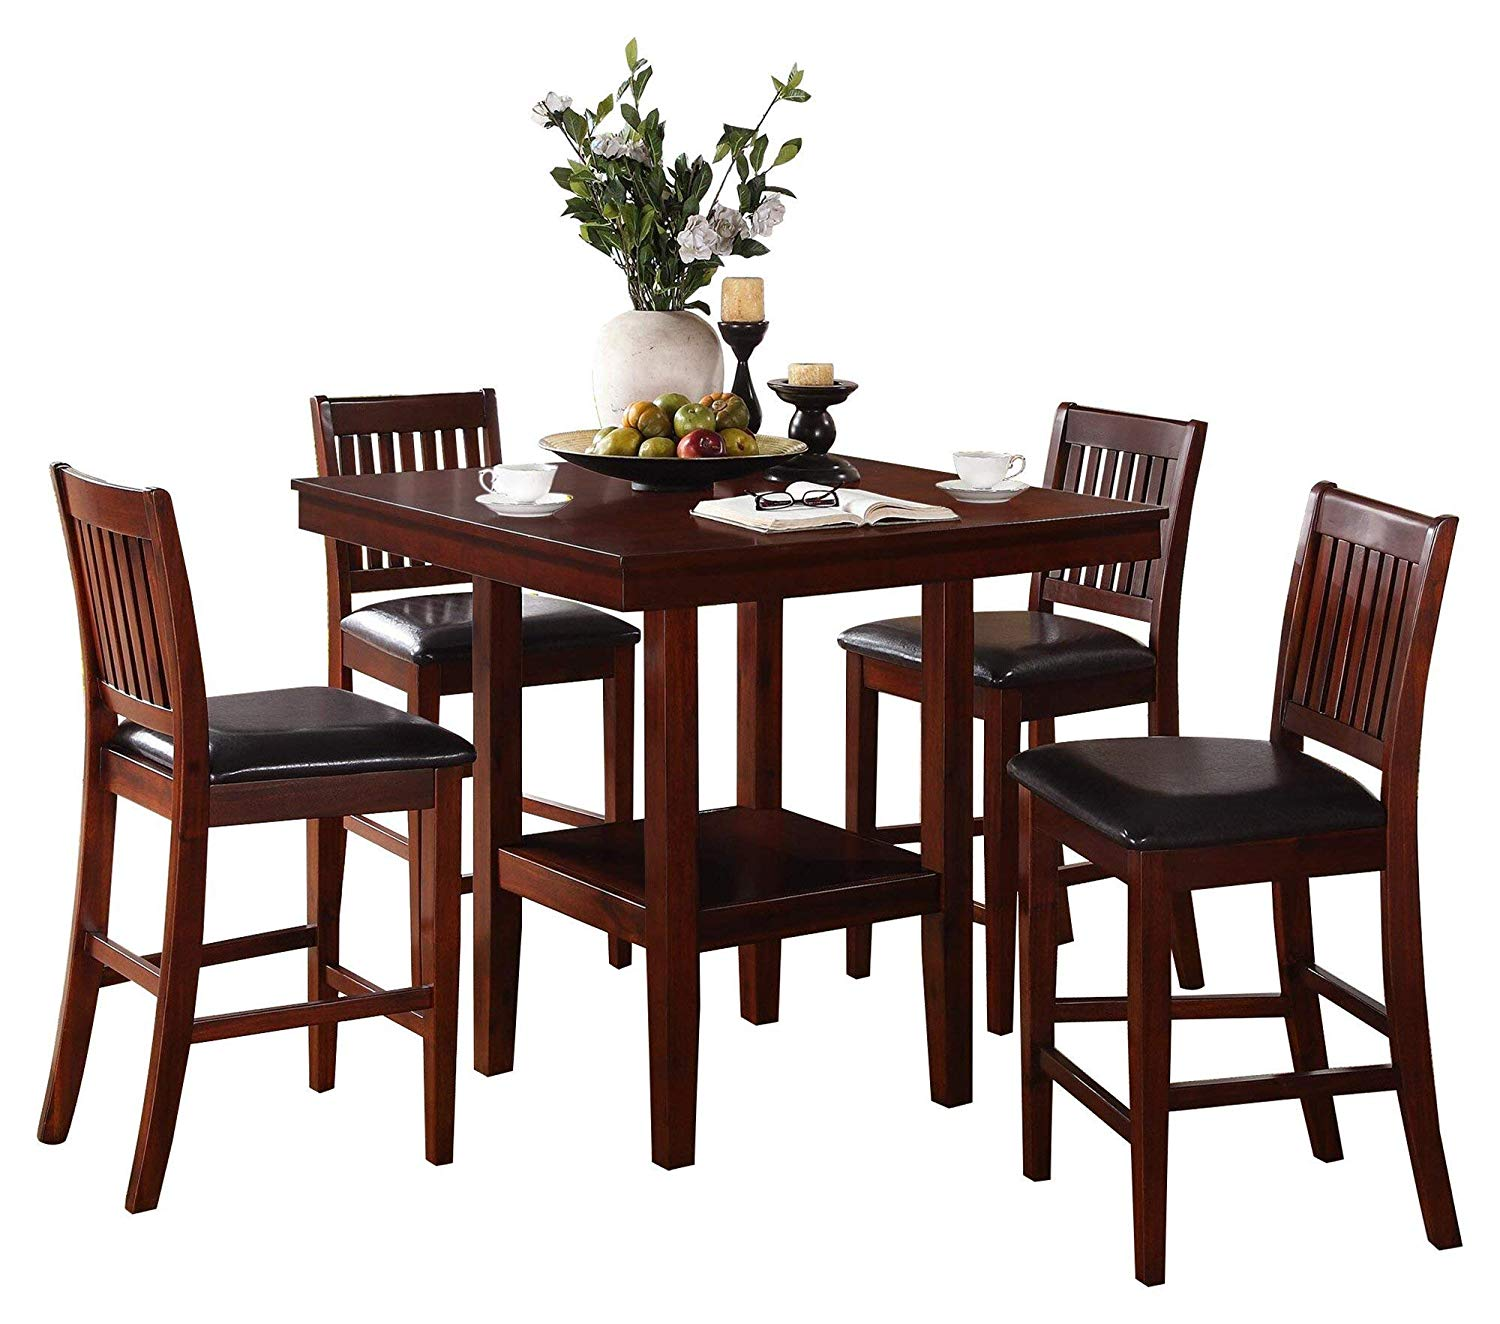 square bar height dining table kitchen get quotations gainer square 5pc counter height dining set table chair in dark brown cheap bar find